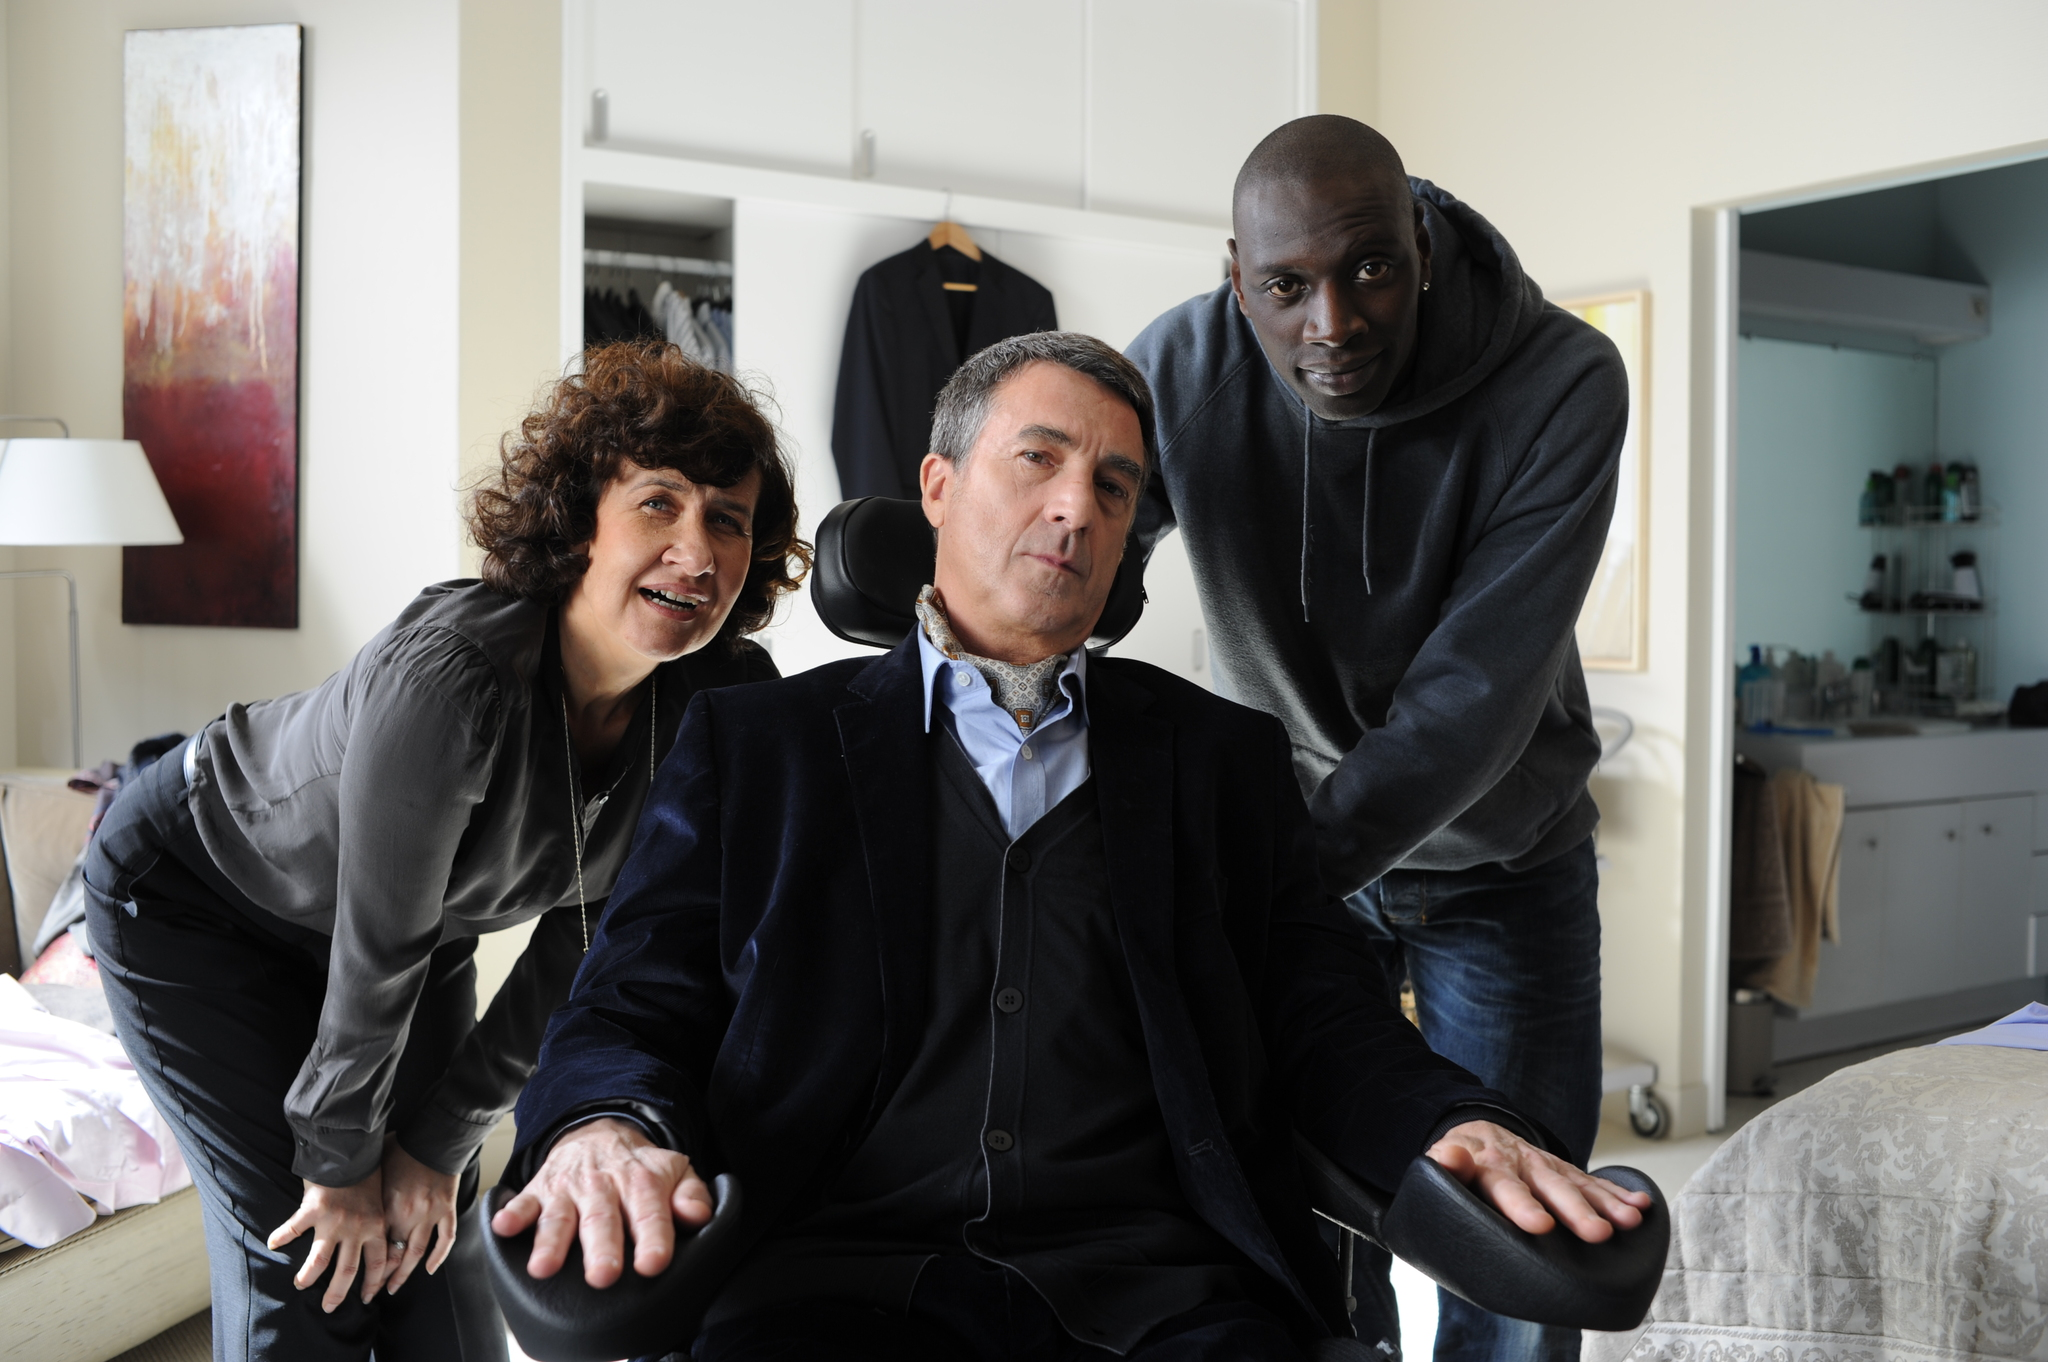 François Cluzet, Anne Le Ny, and Omar Sy in Intouchables (2011)